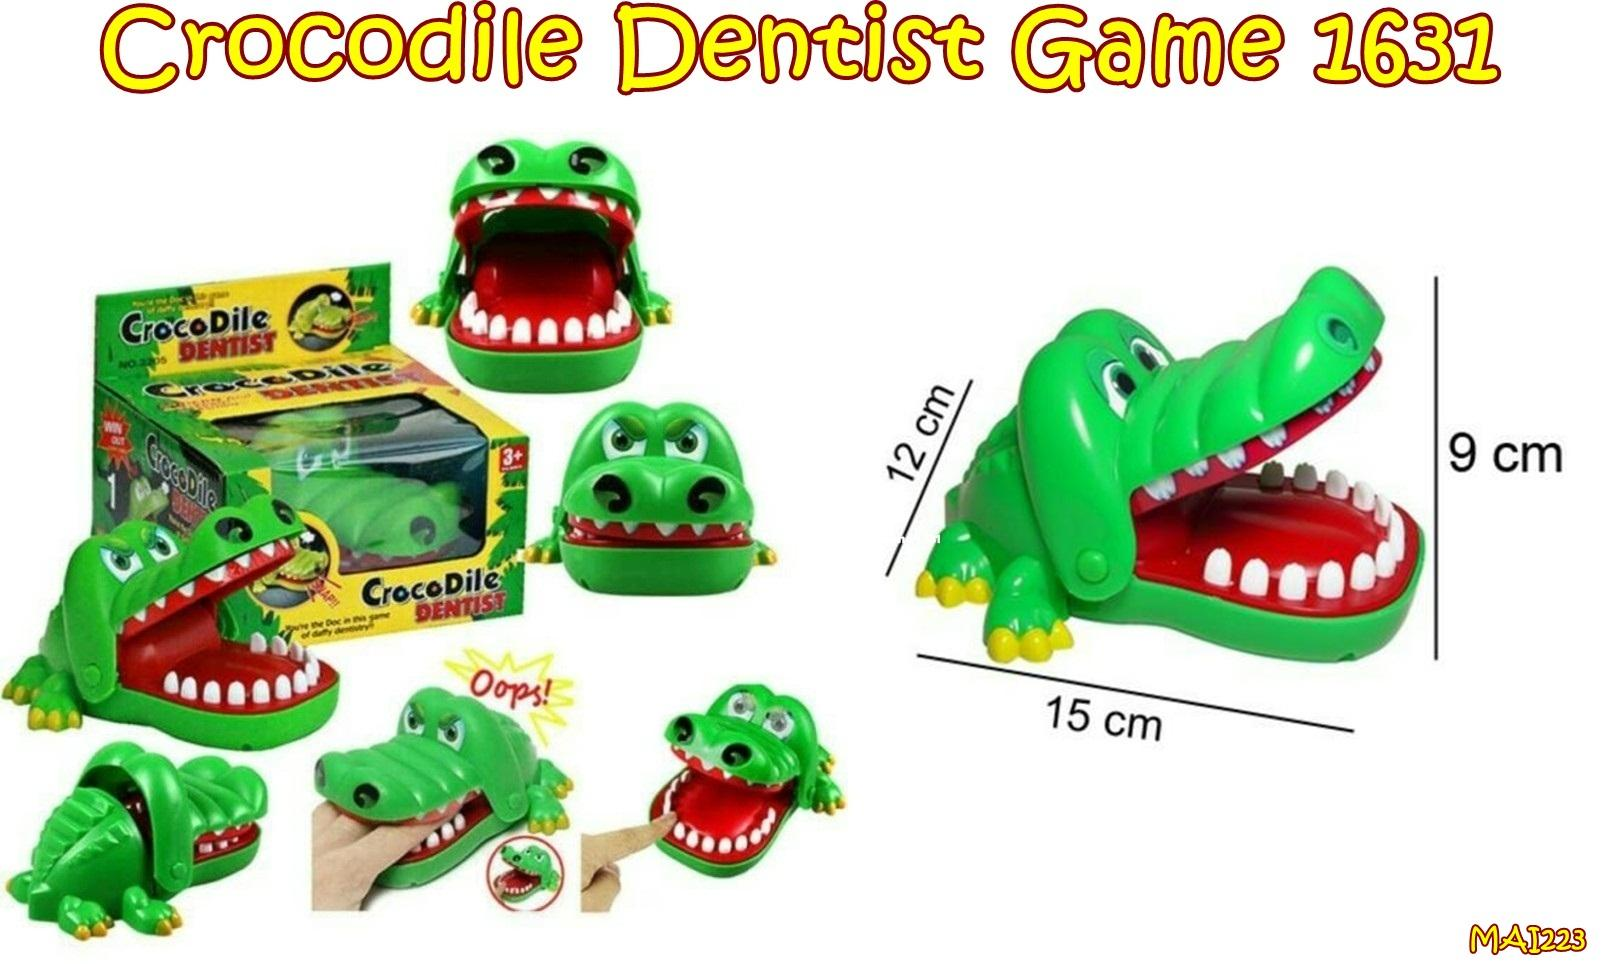 Mai223 Mainan Crocodile Dentist Game 1631 Gigit Buaya Liana Product Search